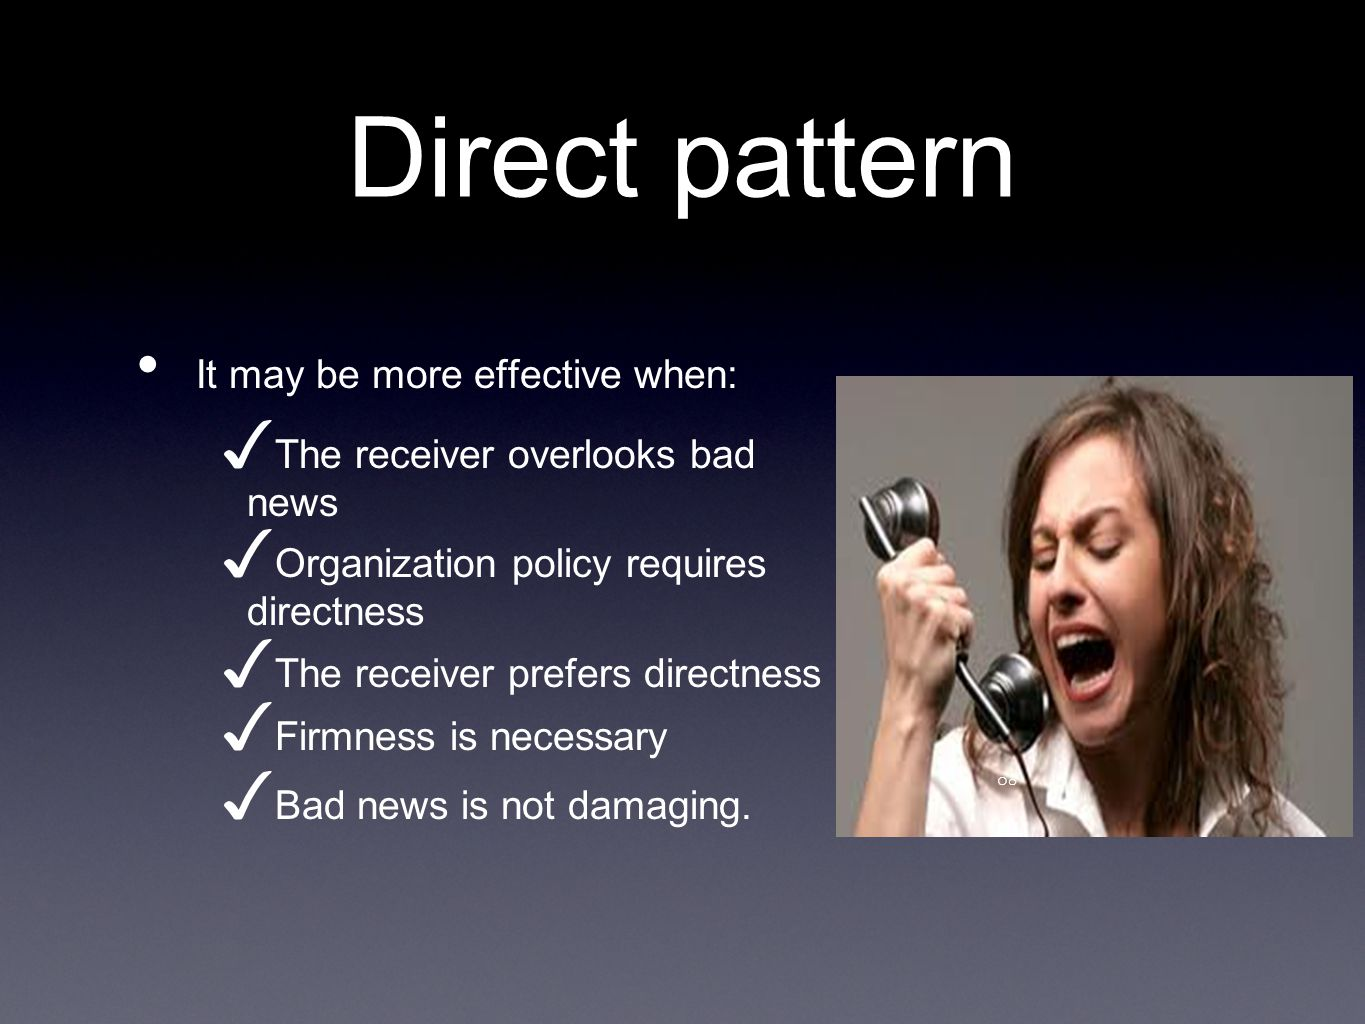 Direct pattern It may be more effective when: The receiver overlooks bad news Organization policy requires directness The receiver prefers directness Firmness is necessary Bad news is not damaging.